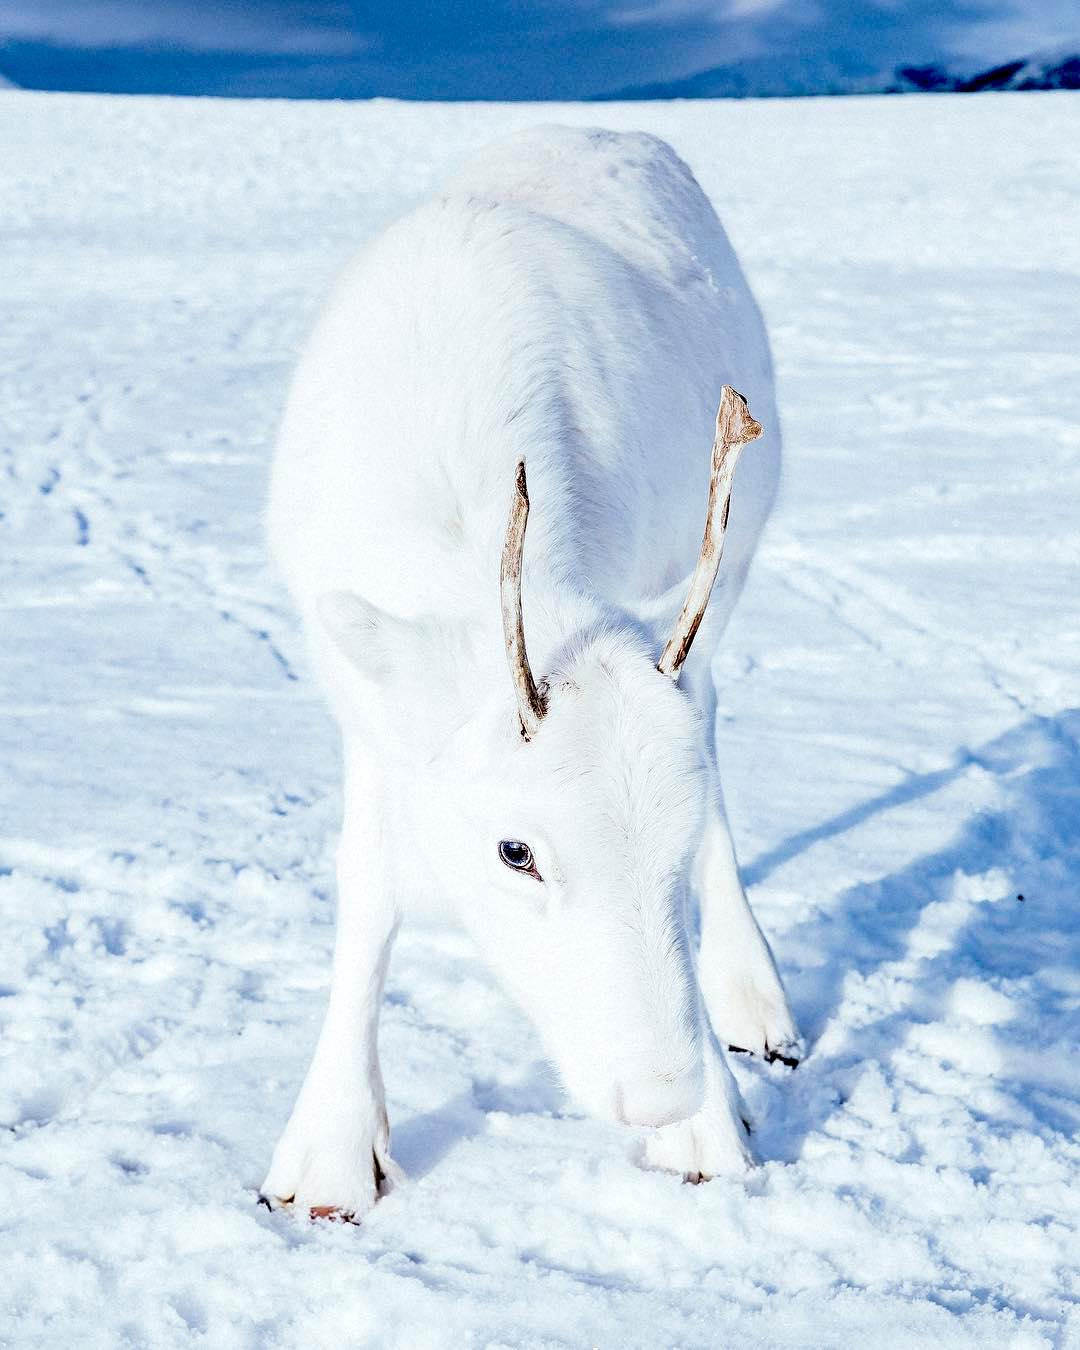 A Stunning Albino Reindeer Blends Into the Snow